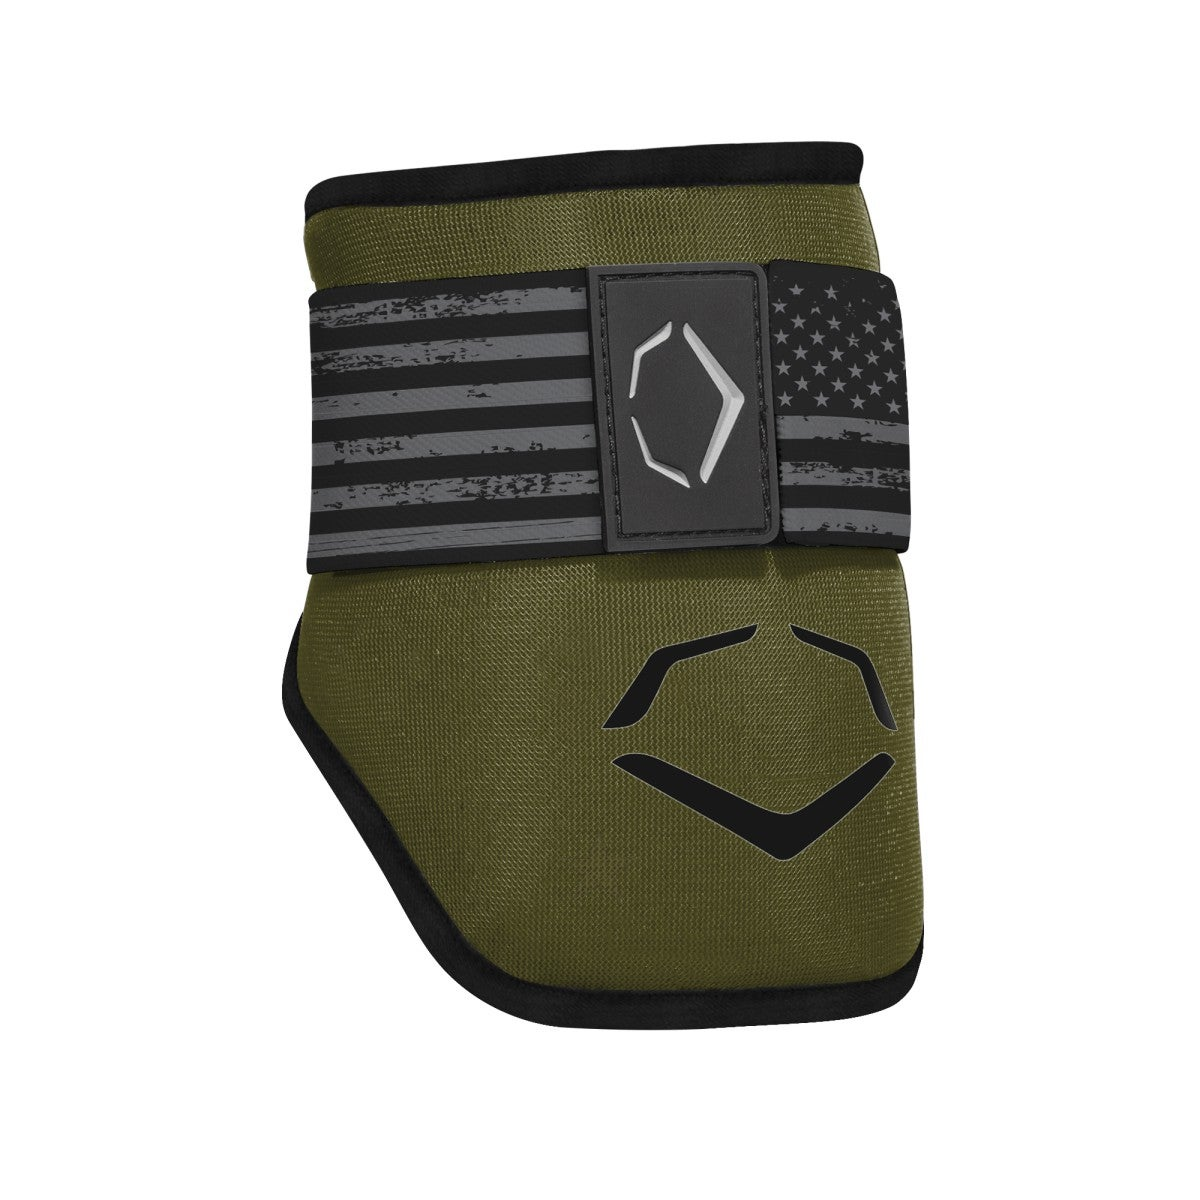 EvoX Limited Edition Salute Batter's Elbow Guard